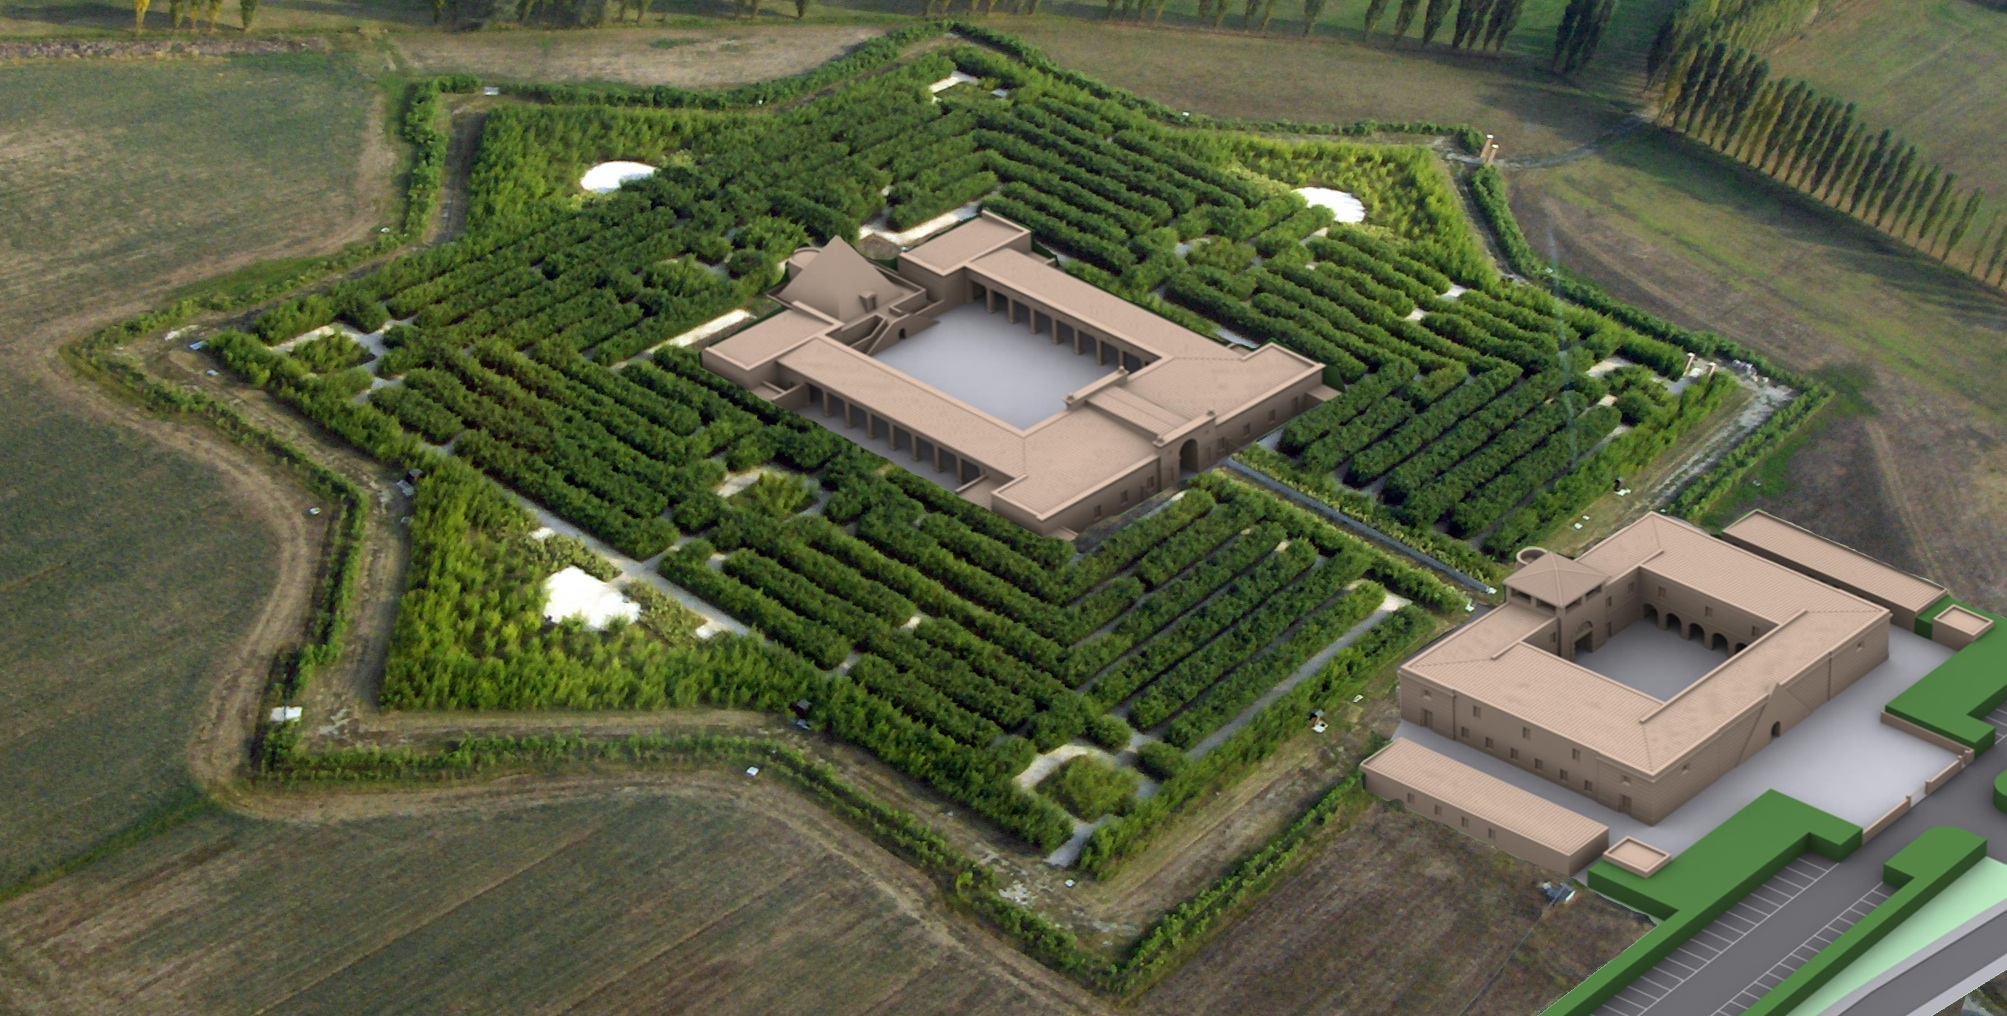 10 of the world's coolest mazes